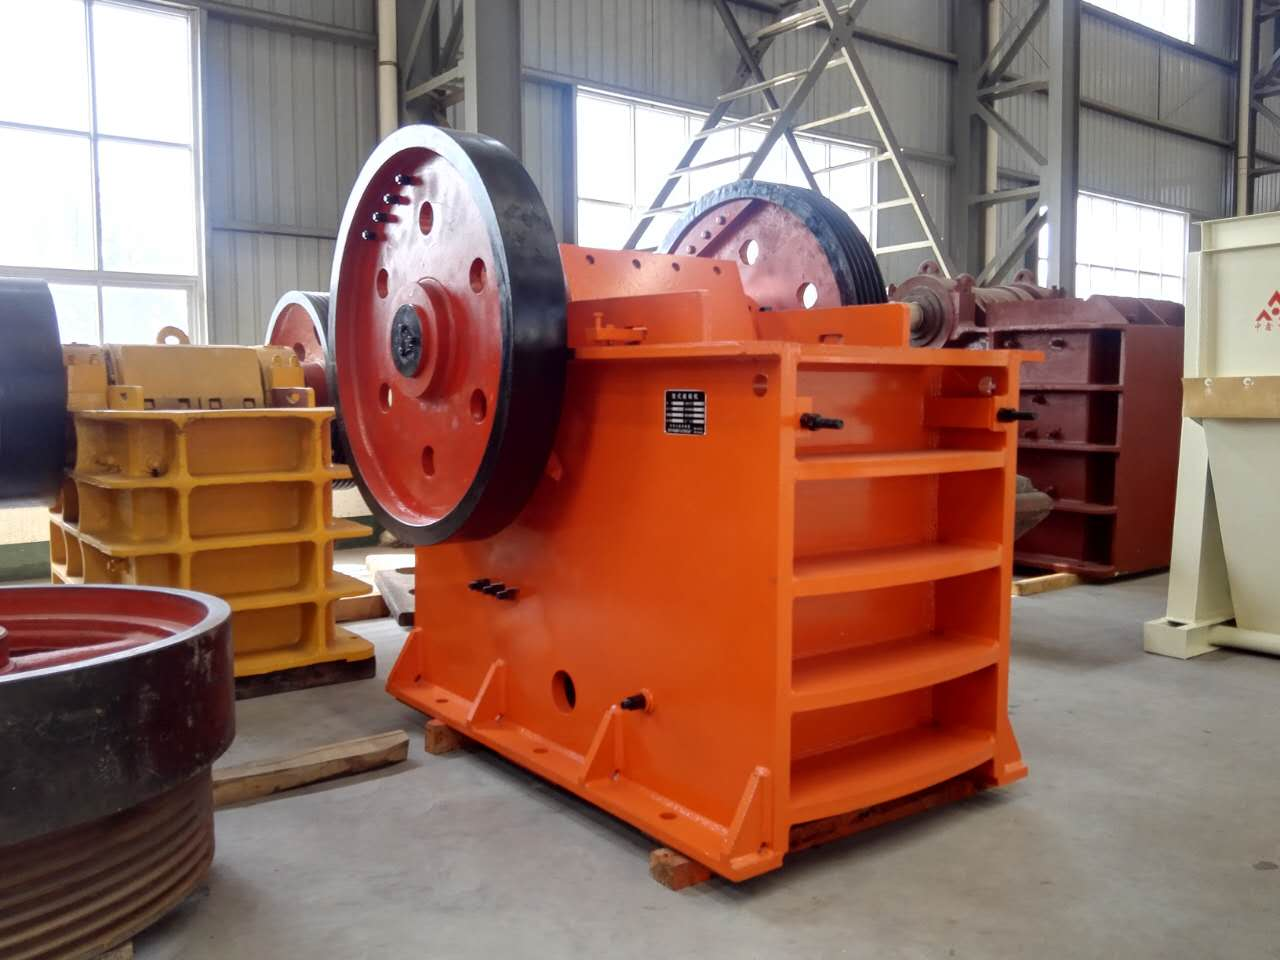 Jaw crusher parts inspection